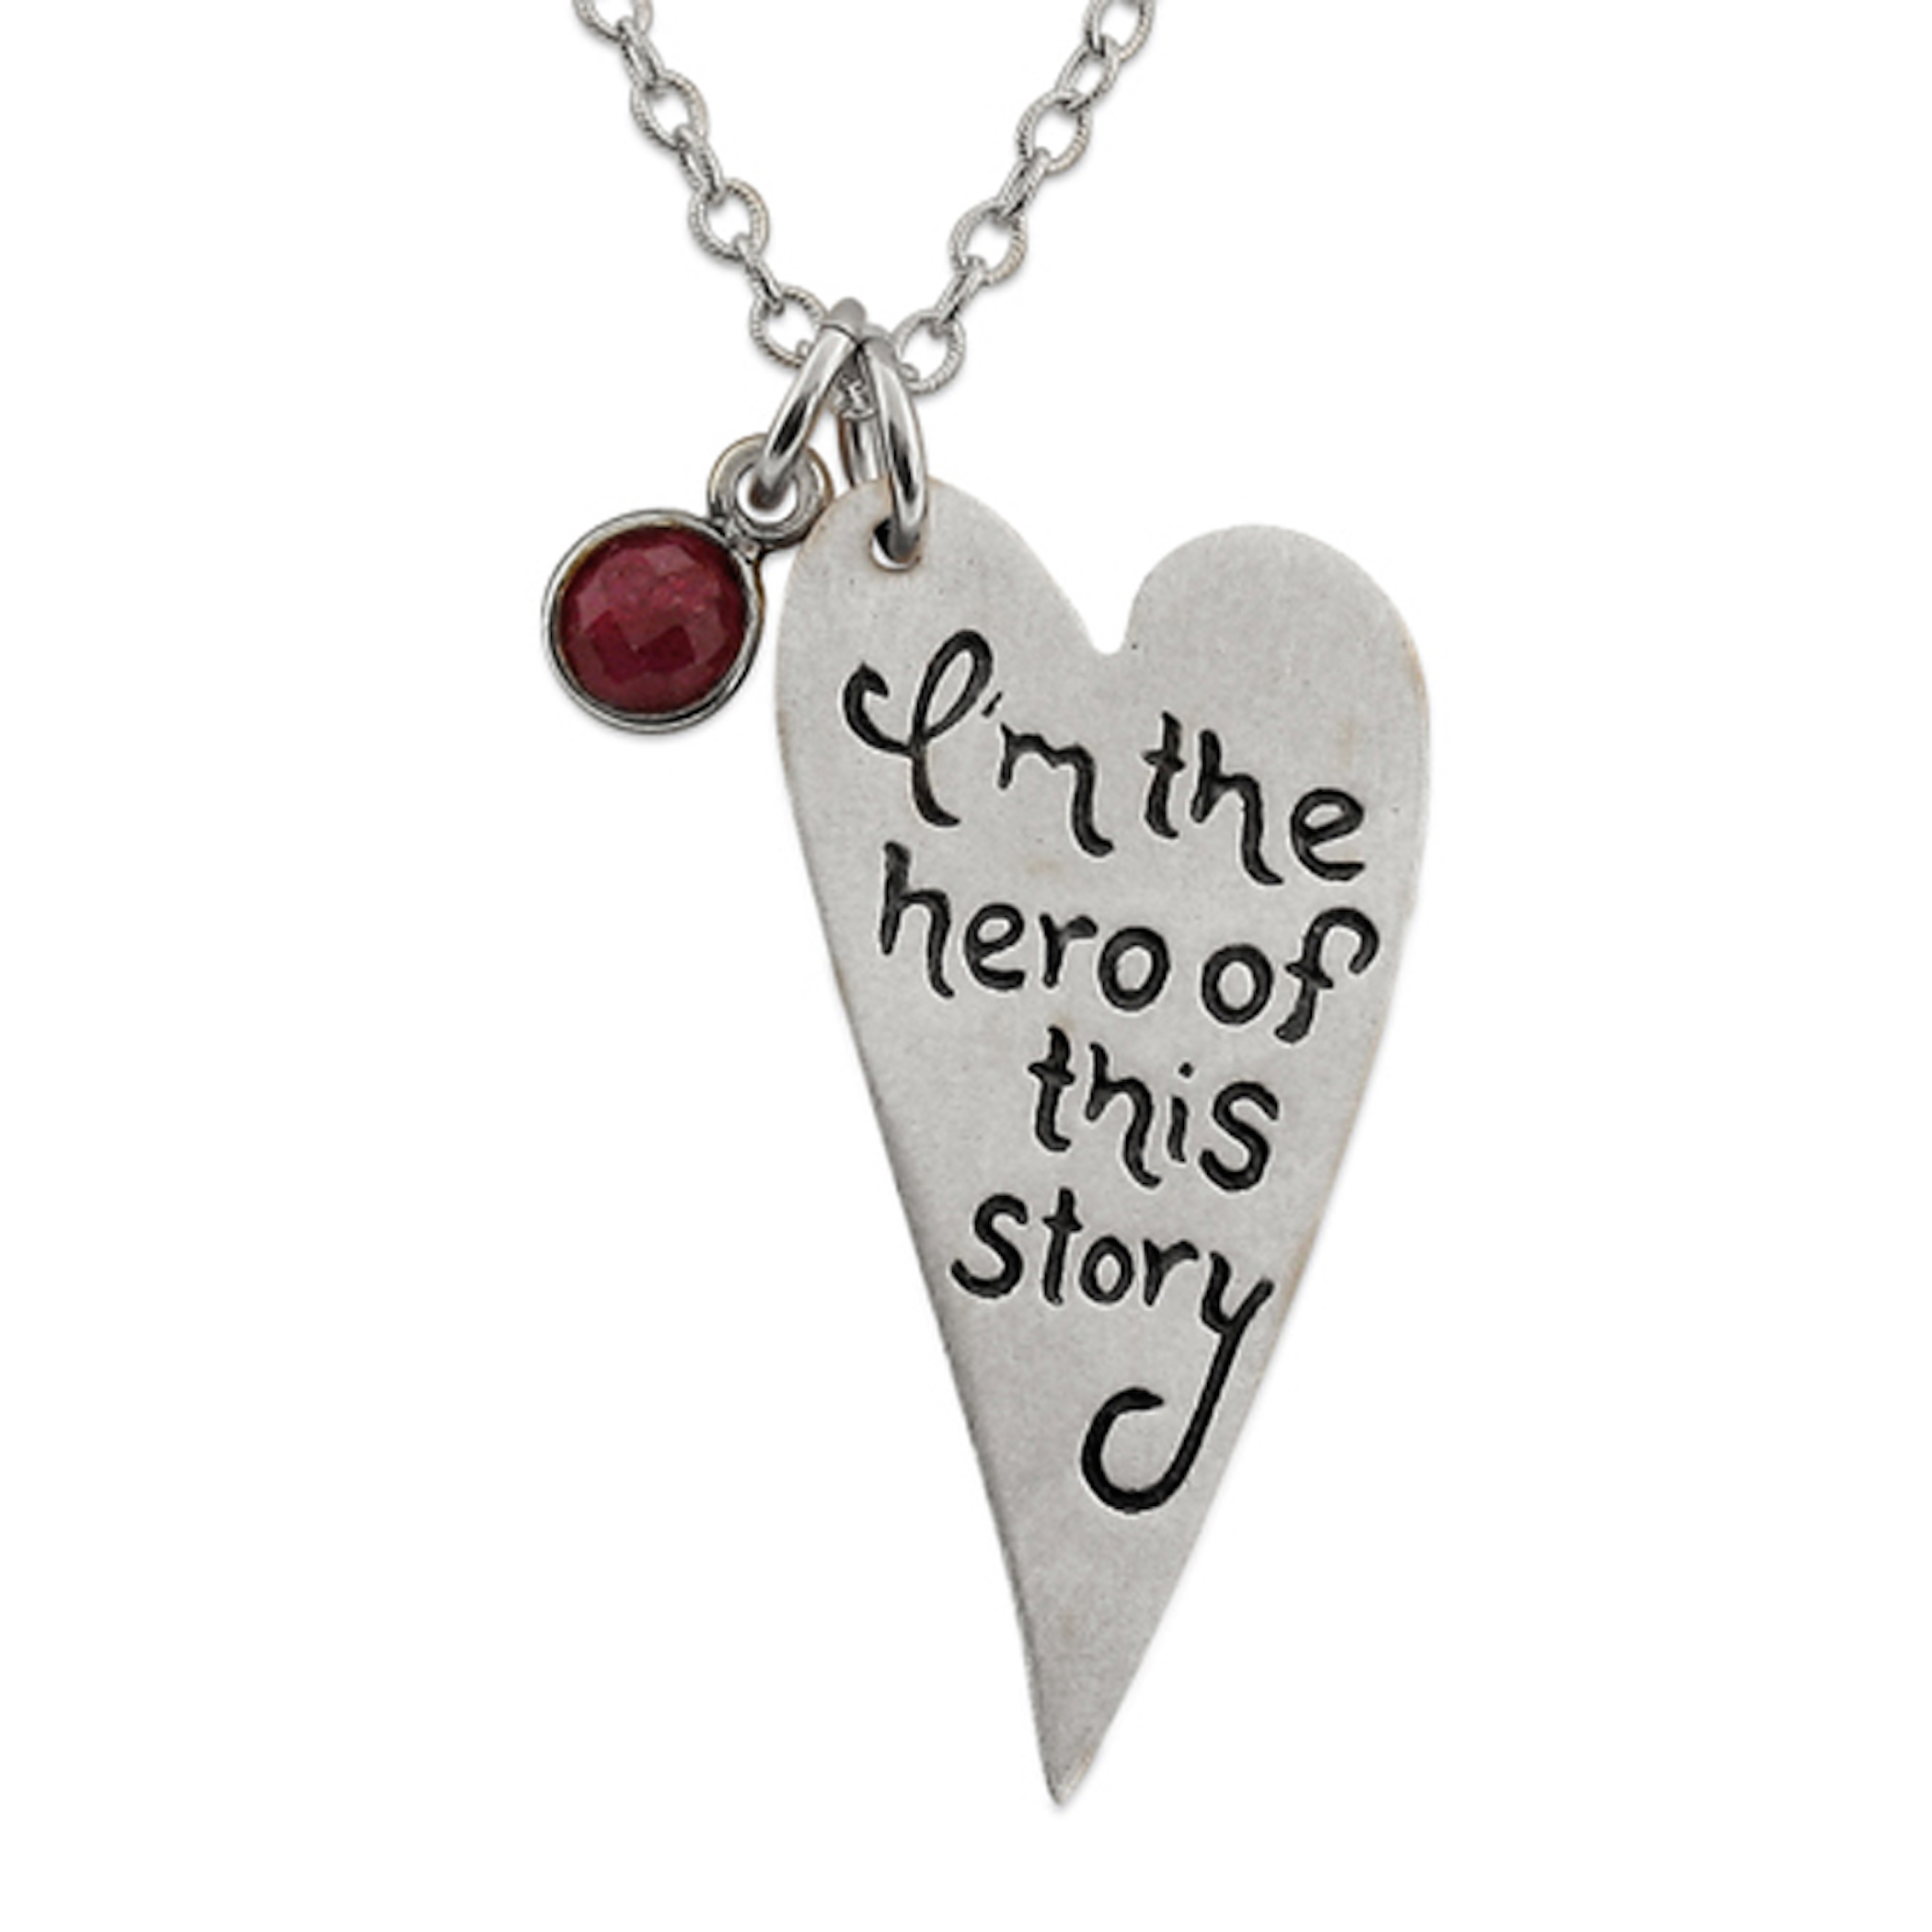 Personalized and Inspirational Jewelry